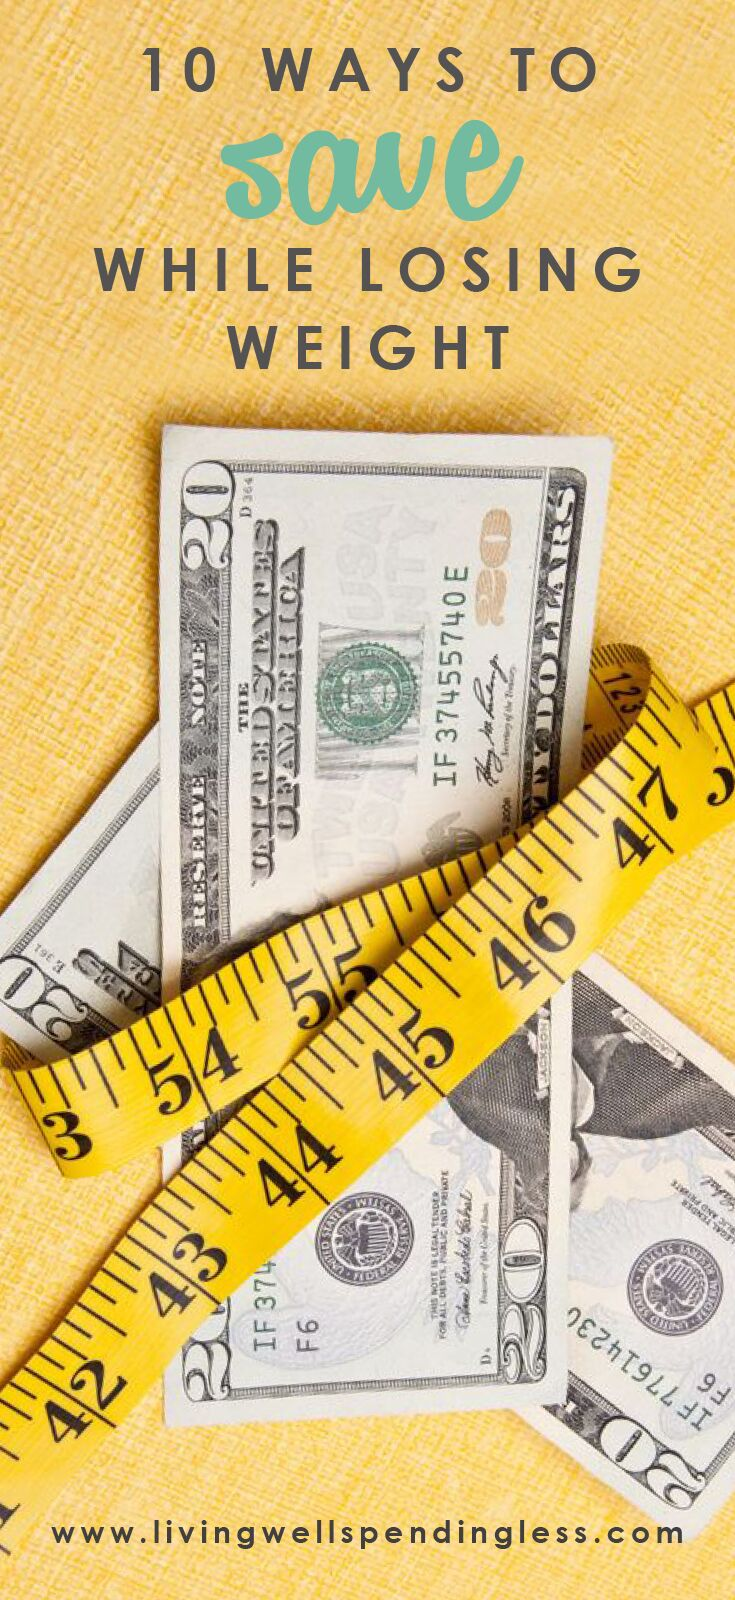 Save Money Lose Weight   Money Saving Weight Loss Tips   Diet on a Budget   Low Cost Diet   Eat Organic